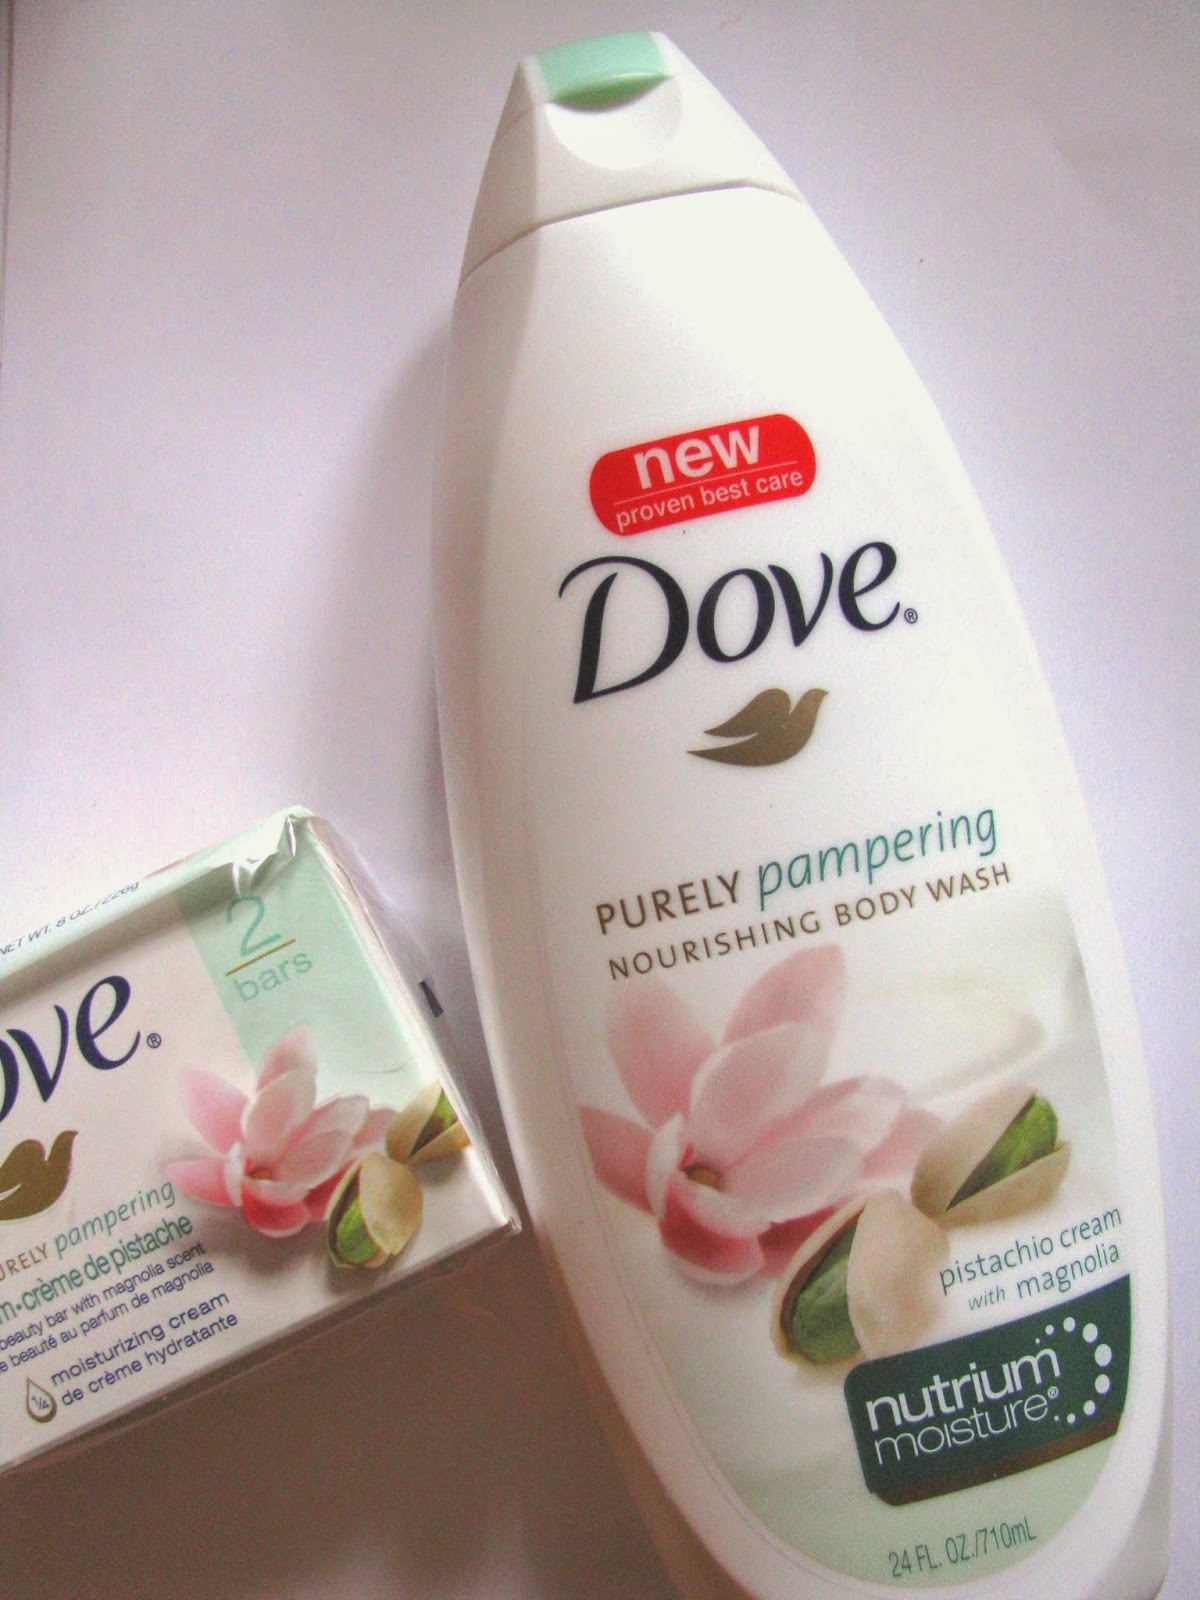 The Beauty Alchemist Dove Purely Pampering Pistachio Cream Body Wash